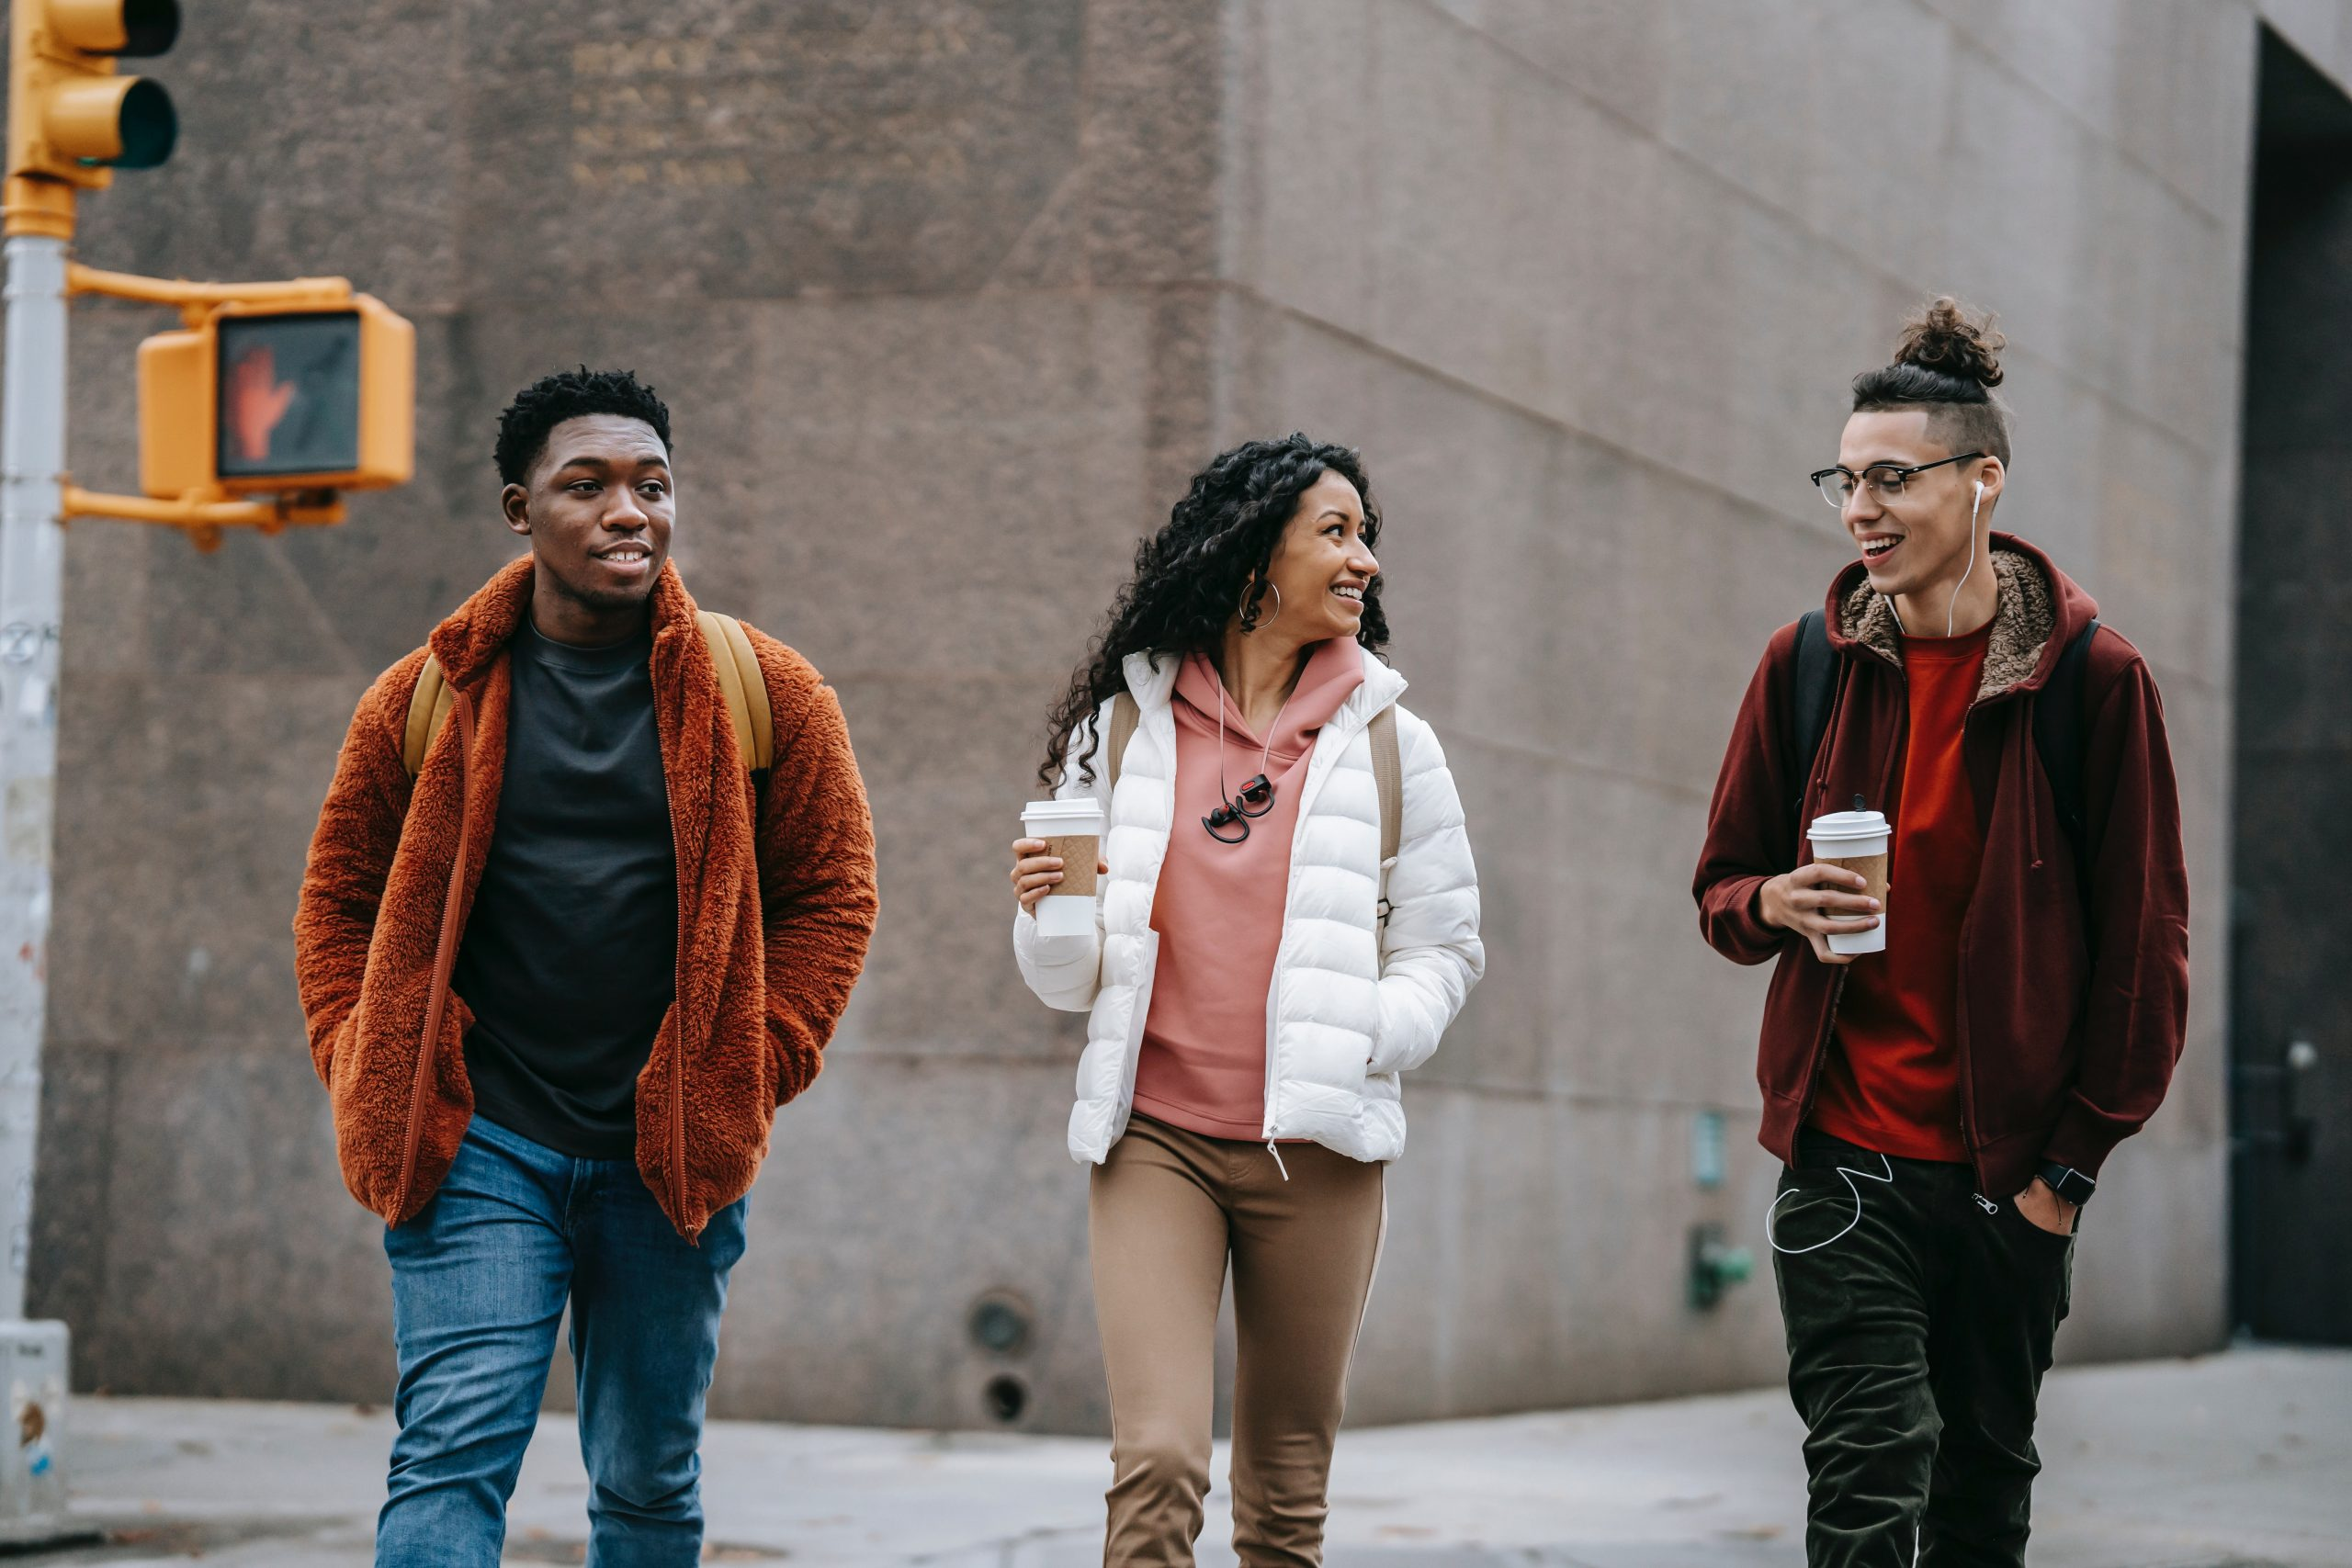 Photo of a white teen male holding a coffee cup and walking with a Latina teen also with a coffee cup and an African American male teen. They are all smiling as they walk down the street conversing with each other which could represent how much better they feel since starting online anxiety treatment for teens with a Solution Focused Brief Therapist in Illinois.